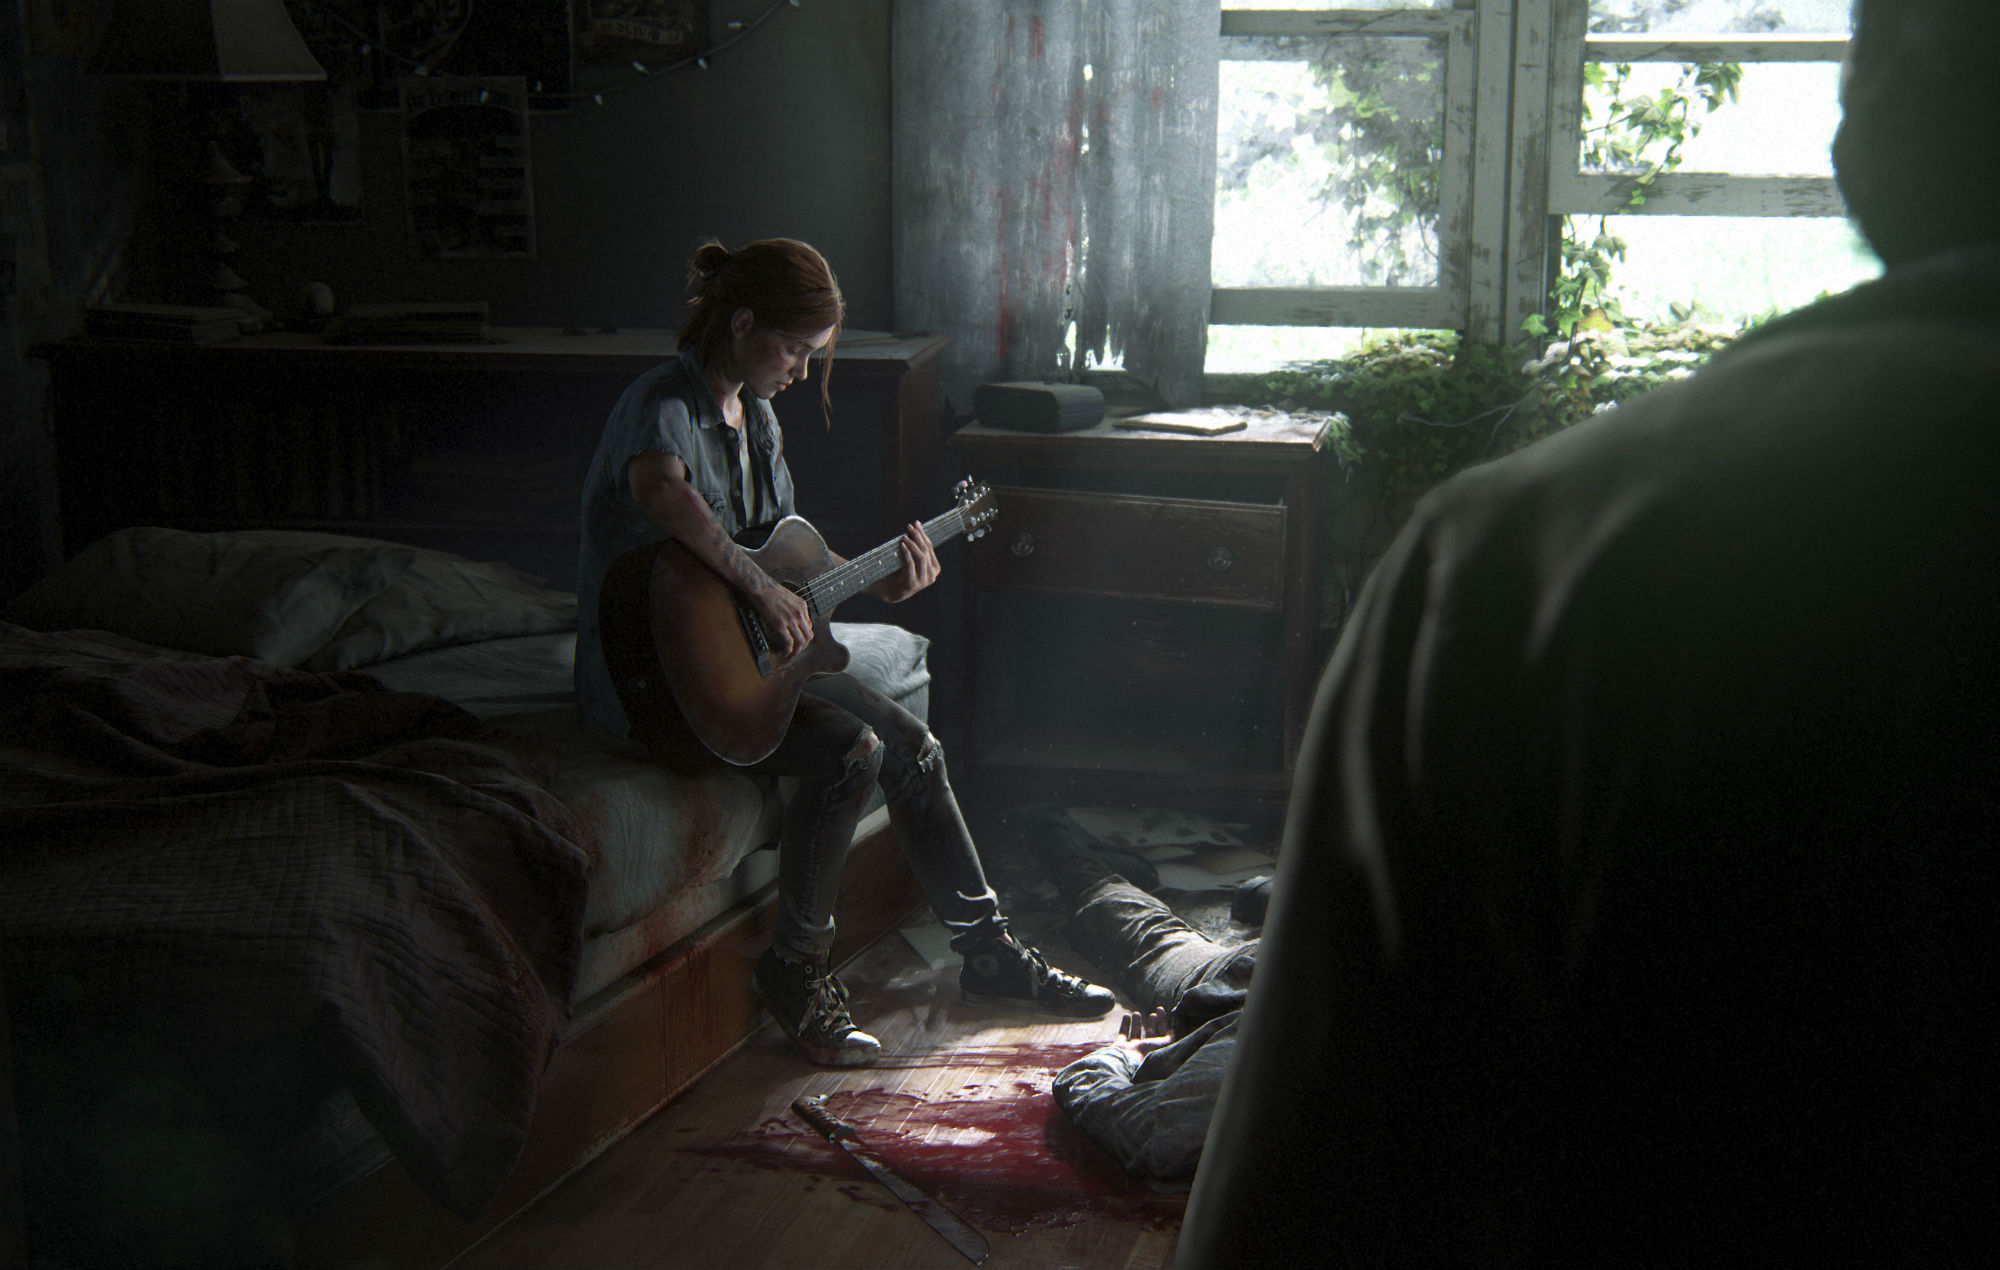 'The Last Of Us Part II' pre-orders haven't been affected by leaks